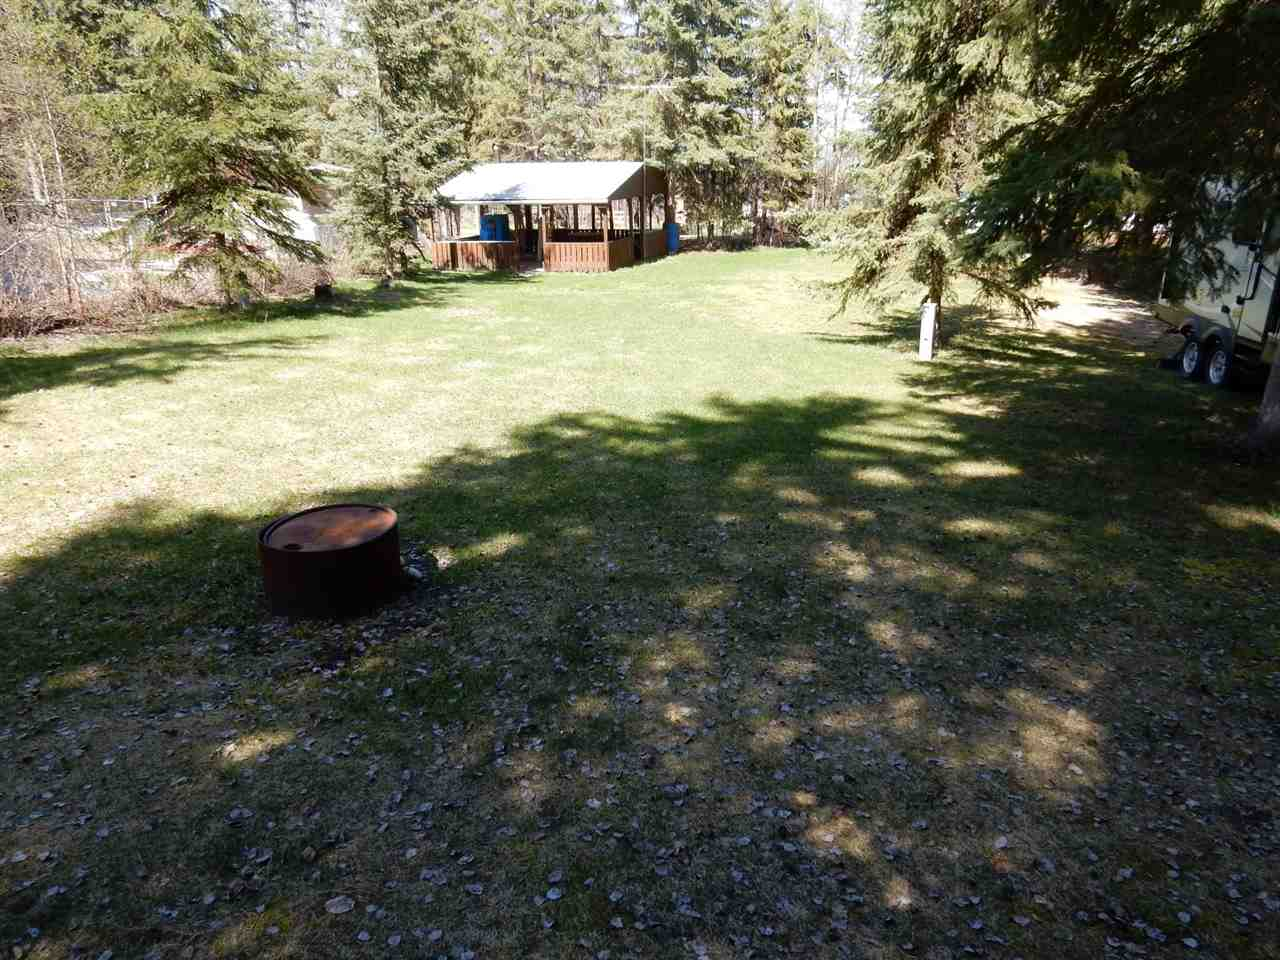 """""""PARTIAL LAKE VIEW"""" of Lac La Nonne Lake from this 150 x 73 x 117 x 65 foot lot. Build your """"DREAM HOME"""" or """"PARK YOUR RV & ENJOY"""" the 21 ft x 18 ft cook house that has power,refrigerator and satellite TV. There is an outhouse with a 100 gallon (aprox) holding tank, two storage sheds & fire pit as well as mature trees. There are power plug ins throughout this lot for recreational vehicles. This property is located on a dead end road so there is very little traffic. Lac la Nonne Lake is known for it's """"GREAT FISHING"""" for Walleye,Northern Pike,Whitefish and Perch. There is a public boat launch, as well as a grocery store. This lake reaches a depth of 60 ft toward the west end. Boating and water sports are common on the lake however it doesn't get overly busy. Deer, moose, Elk, Pelicans & lots of other wildlife. This is one of the """"NICEST LOTS AVAILIABLE THAT OFFERS A PARTIAL LAKE VIEW!!""""  Less than an hour to Edmonton & 15 minutes to Barrhead. GST if applicable, shall be the responsibility of the purchaser."""